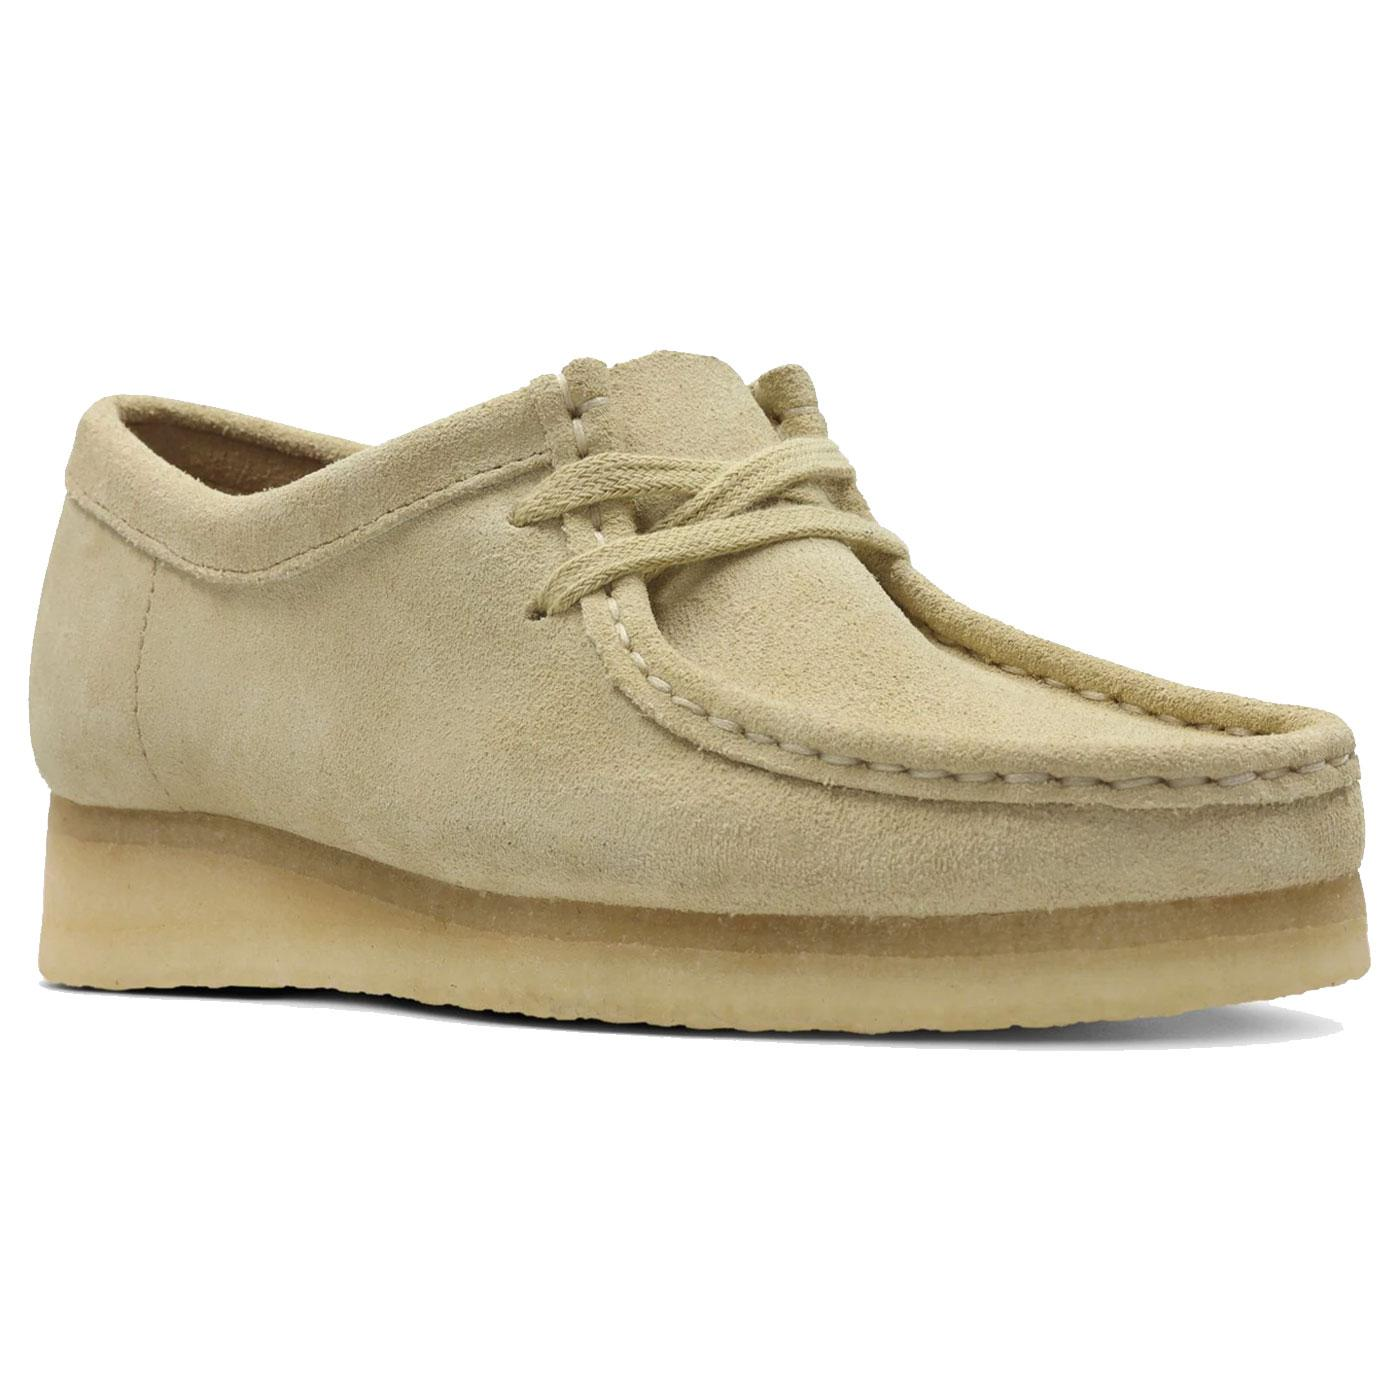 Wallabee CLARKS ORIGINALS 60s Mod Suede Shoes M